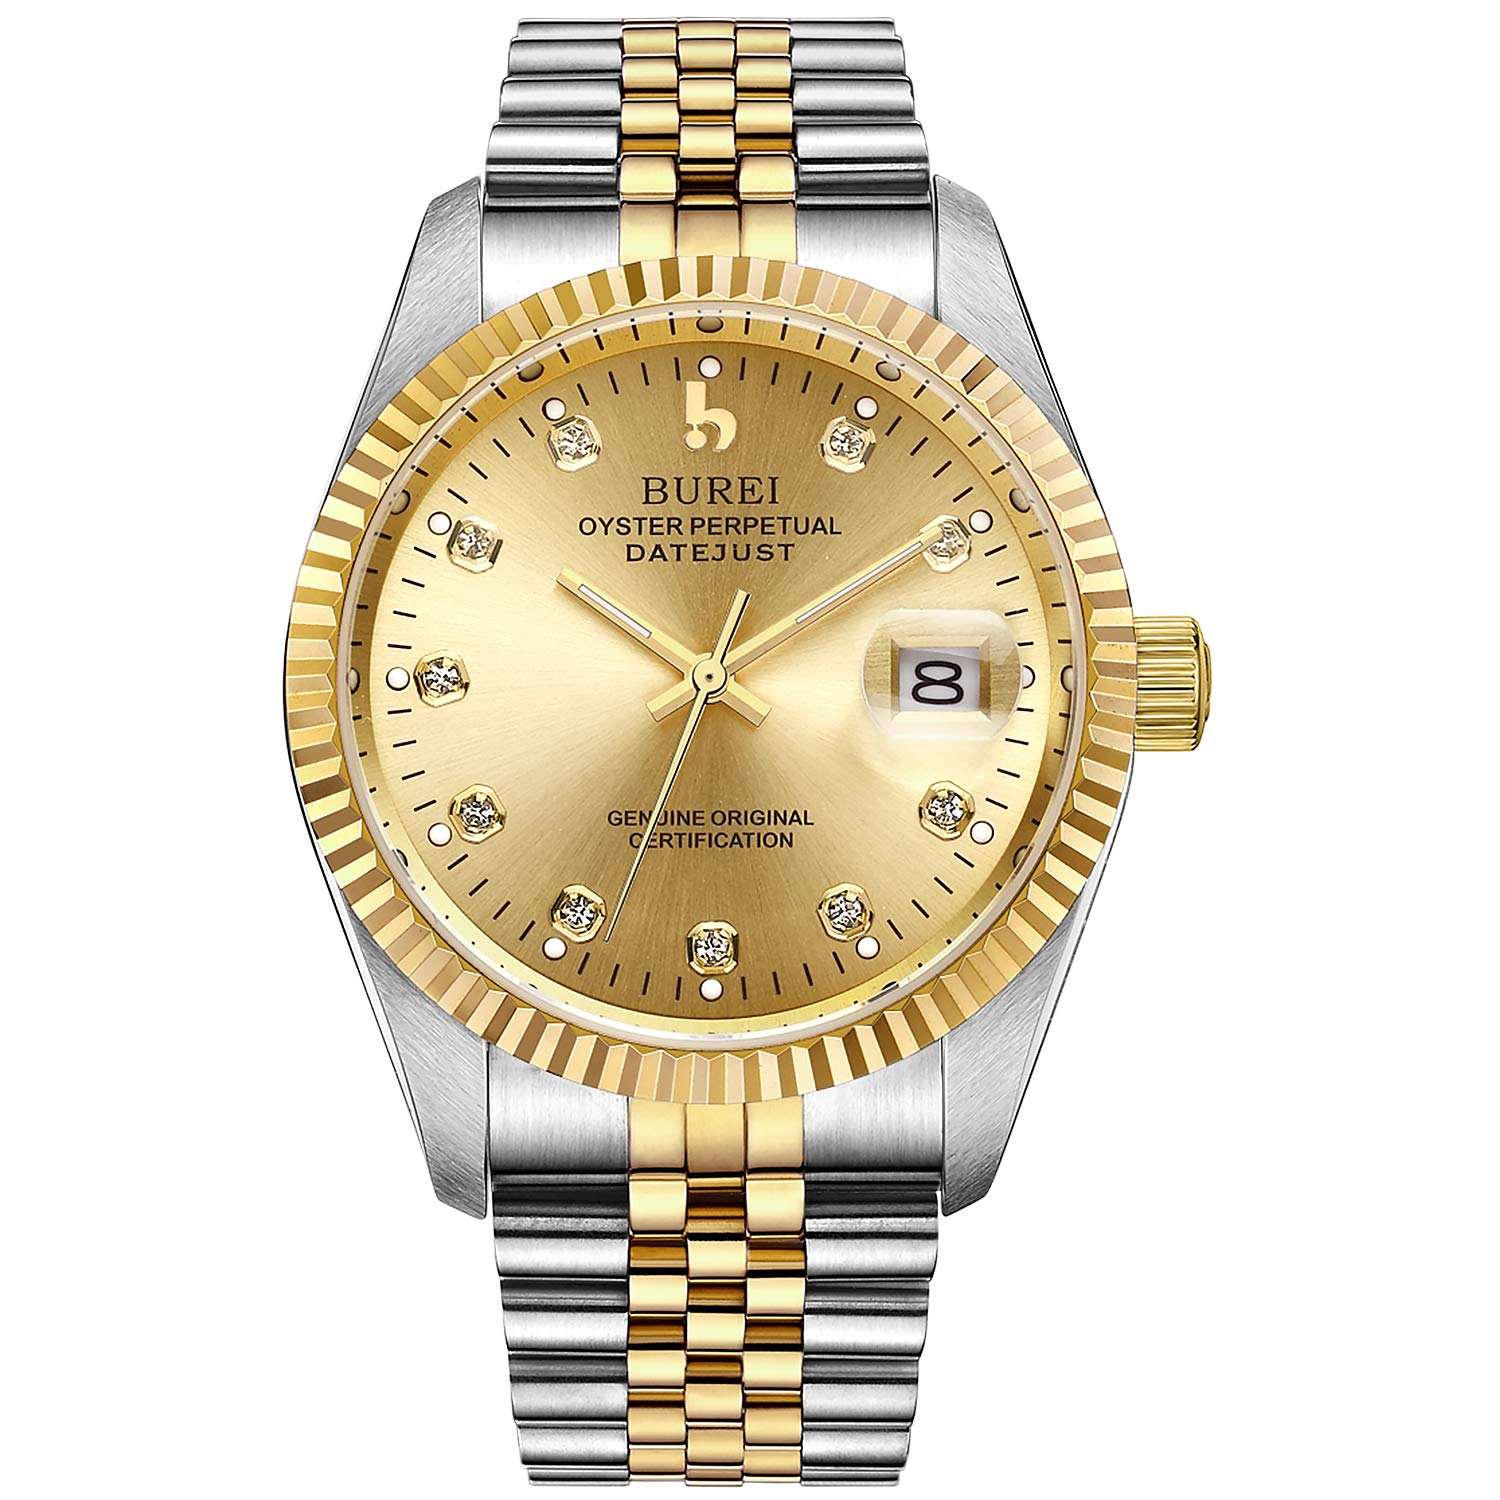 e007aab2044 BUREI Mens Automatic Self Winding Watch Elegant Casual Mechanical Gents  Watch Jeweled with Sapphire Glass and Date Calendar (Gold)  Jay Allen   Amazon.co.uk  ...